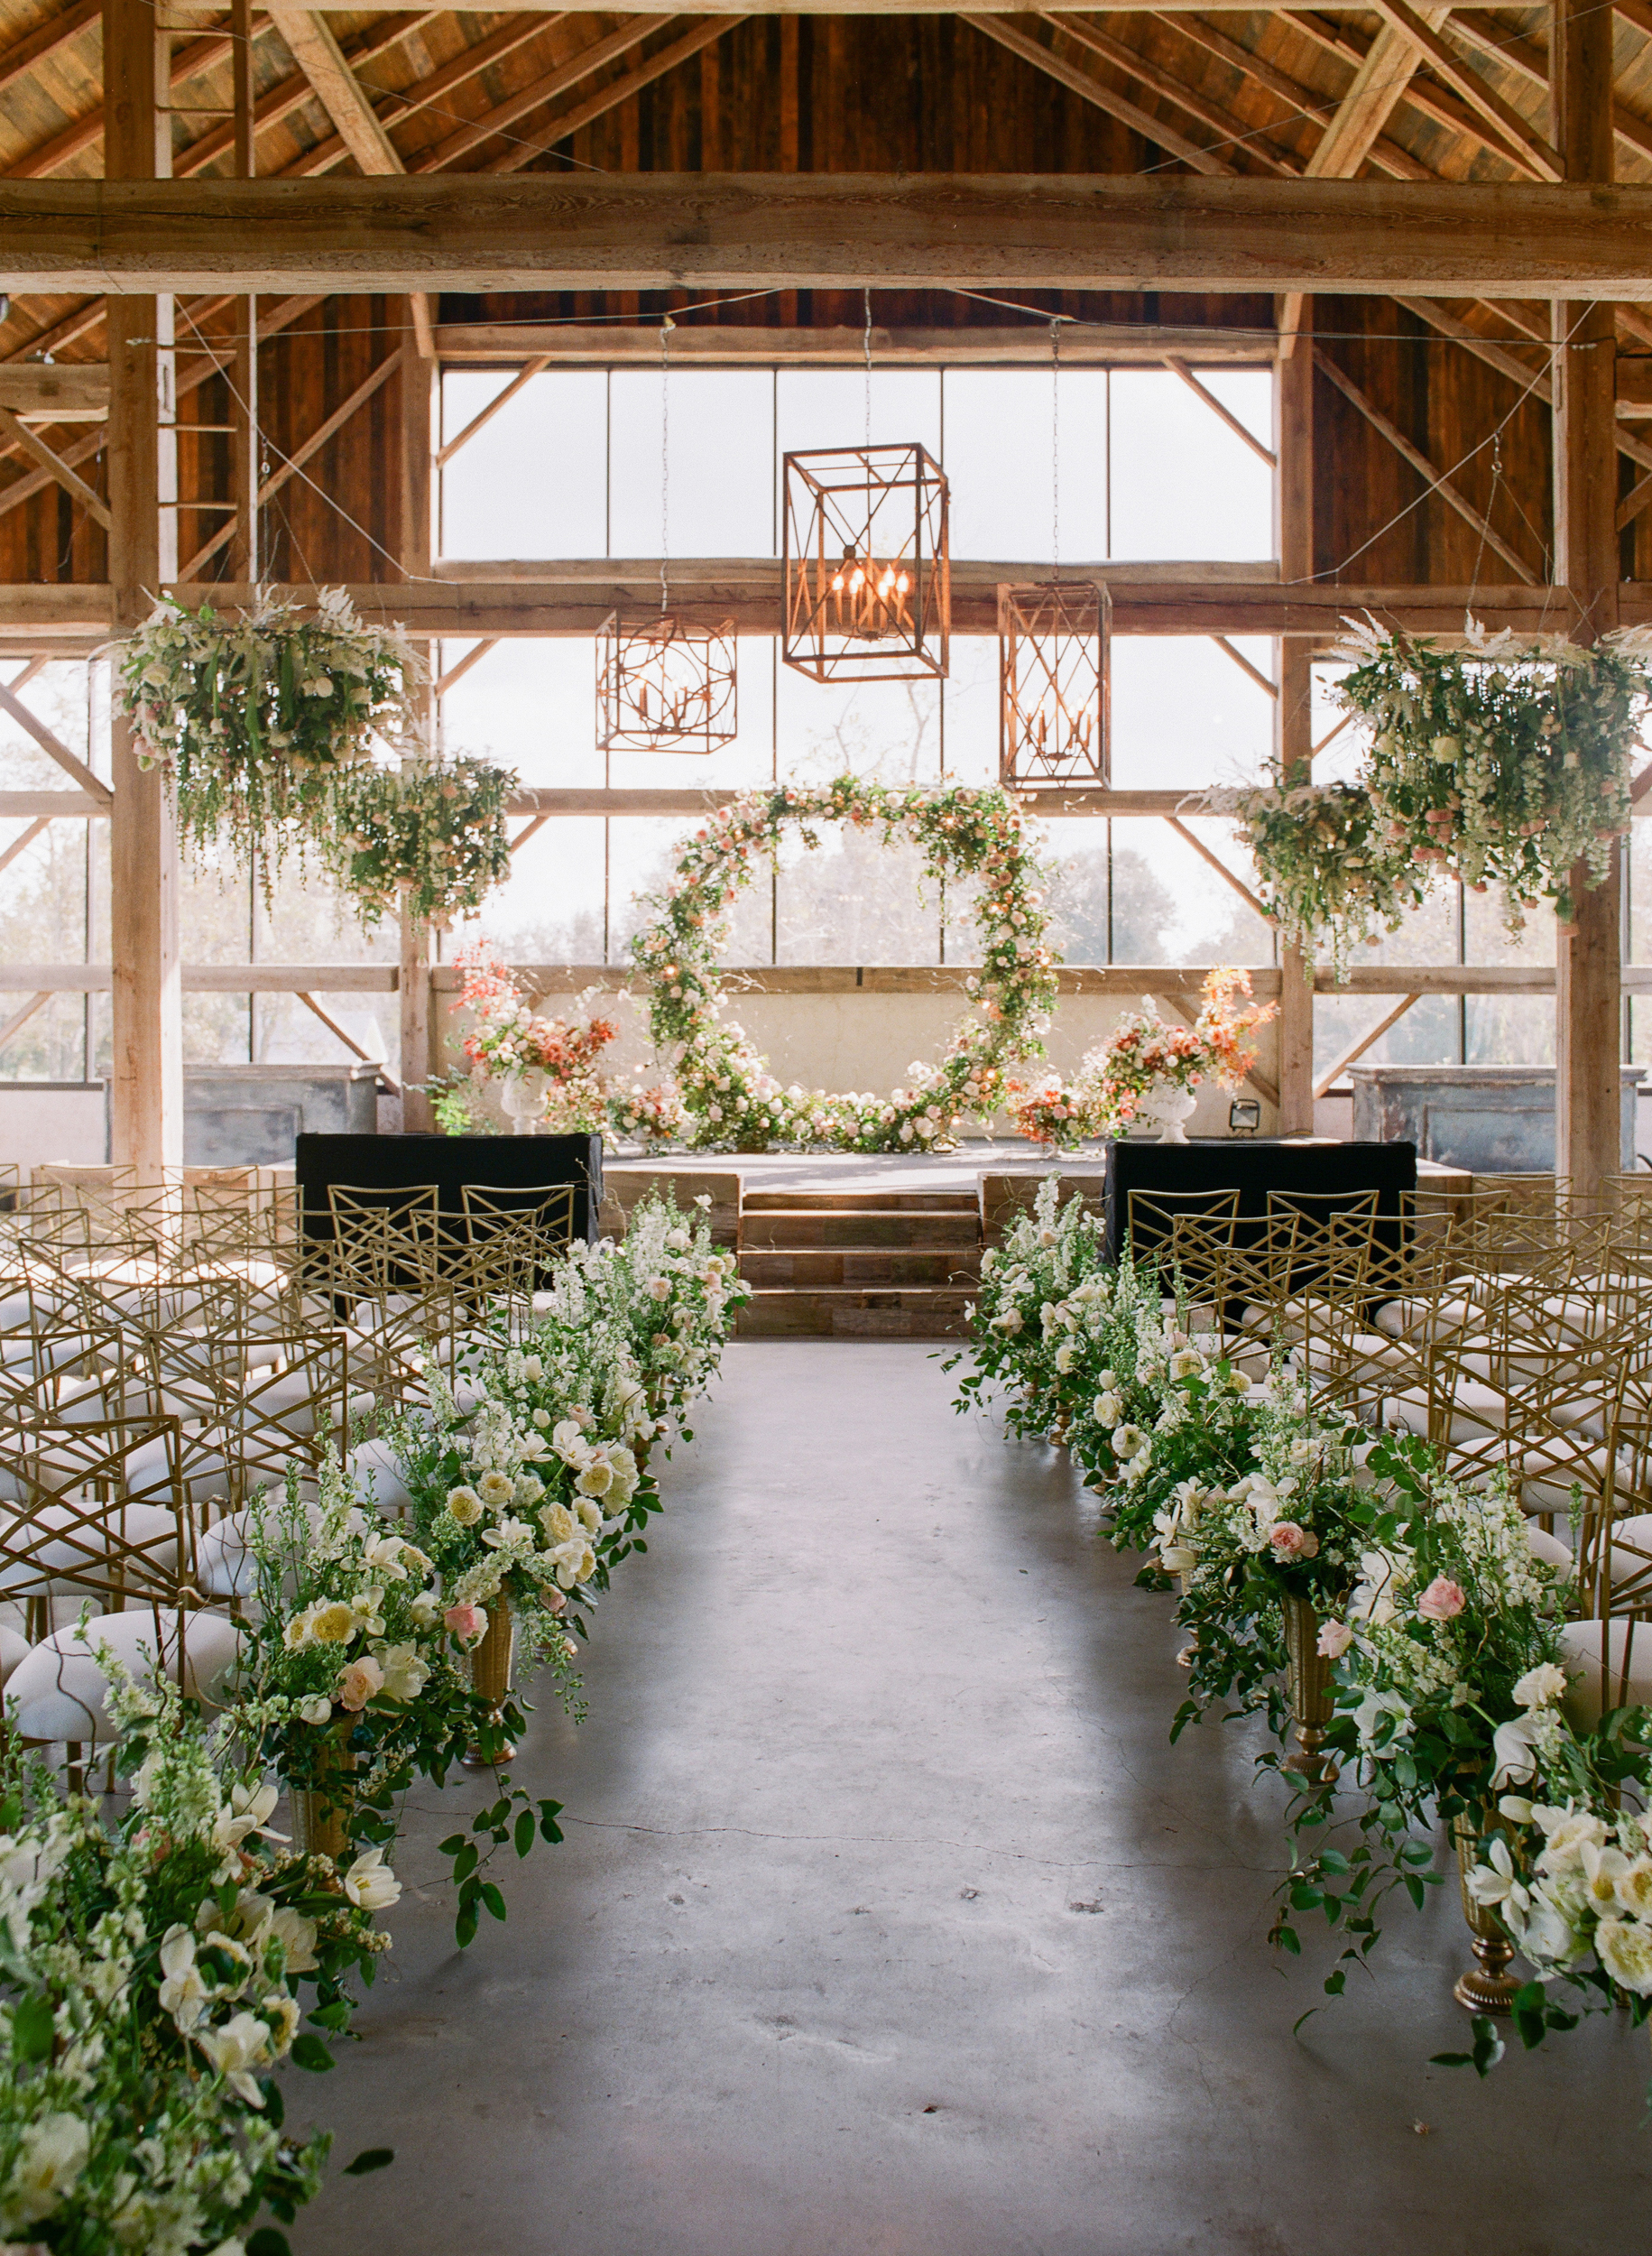 One Couple's Elegant, Flower-Filled Barn Wedding in Texas